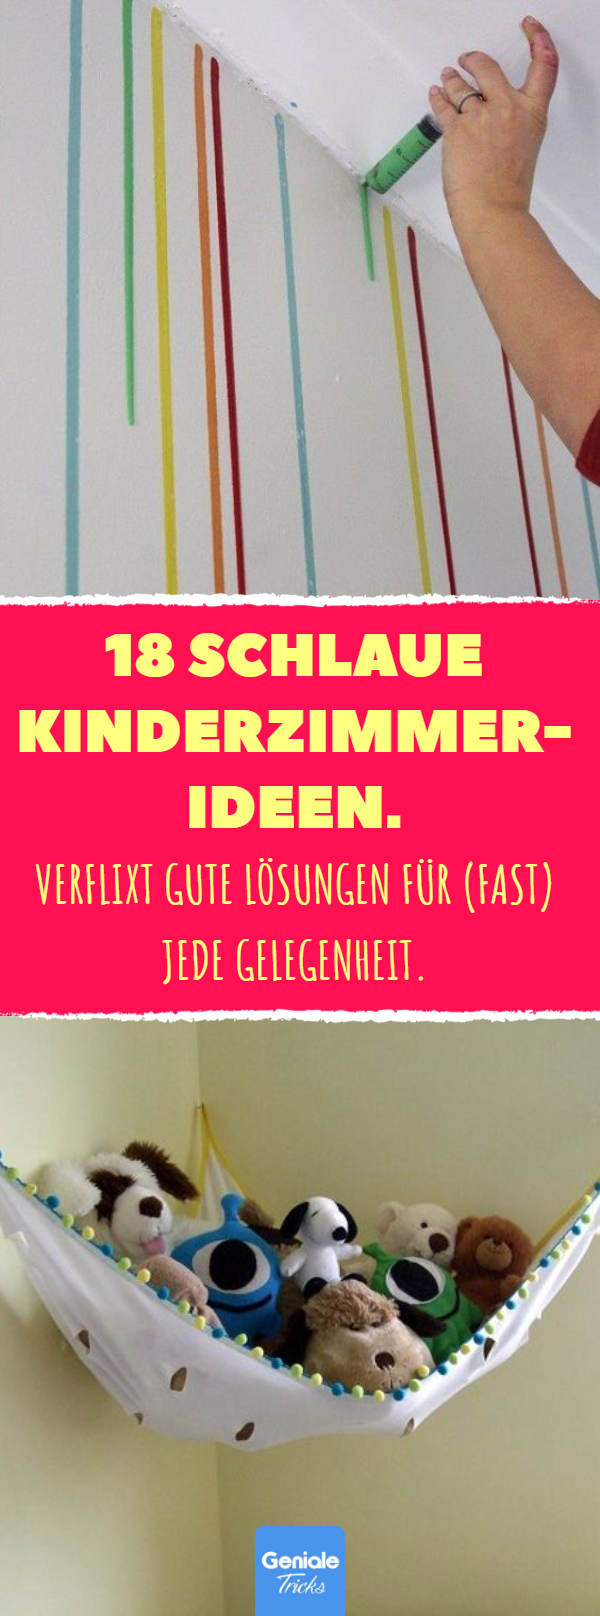 18 schlaue kinderzimmer ideen kinderzimmer einrichten einrichtung wandgestaltung diy. Black Bedroom Furniture Sets. Home Design Ideas